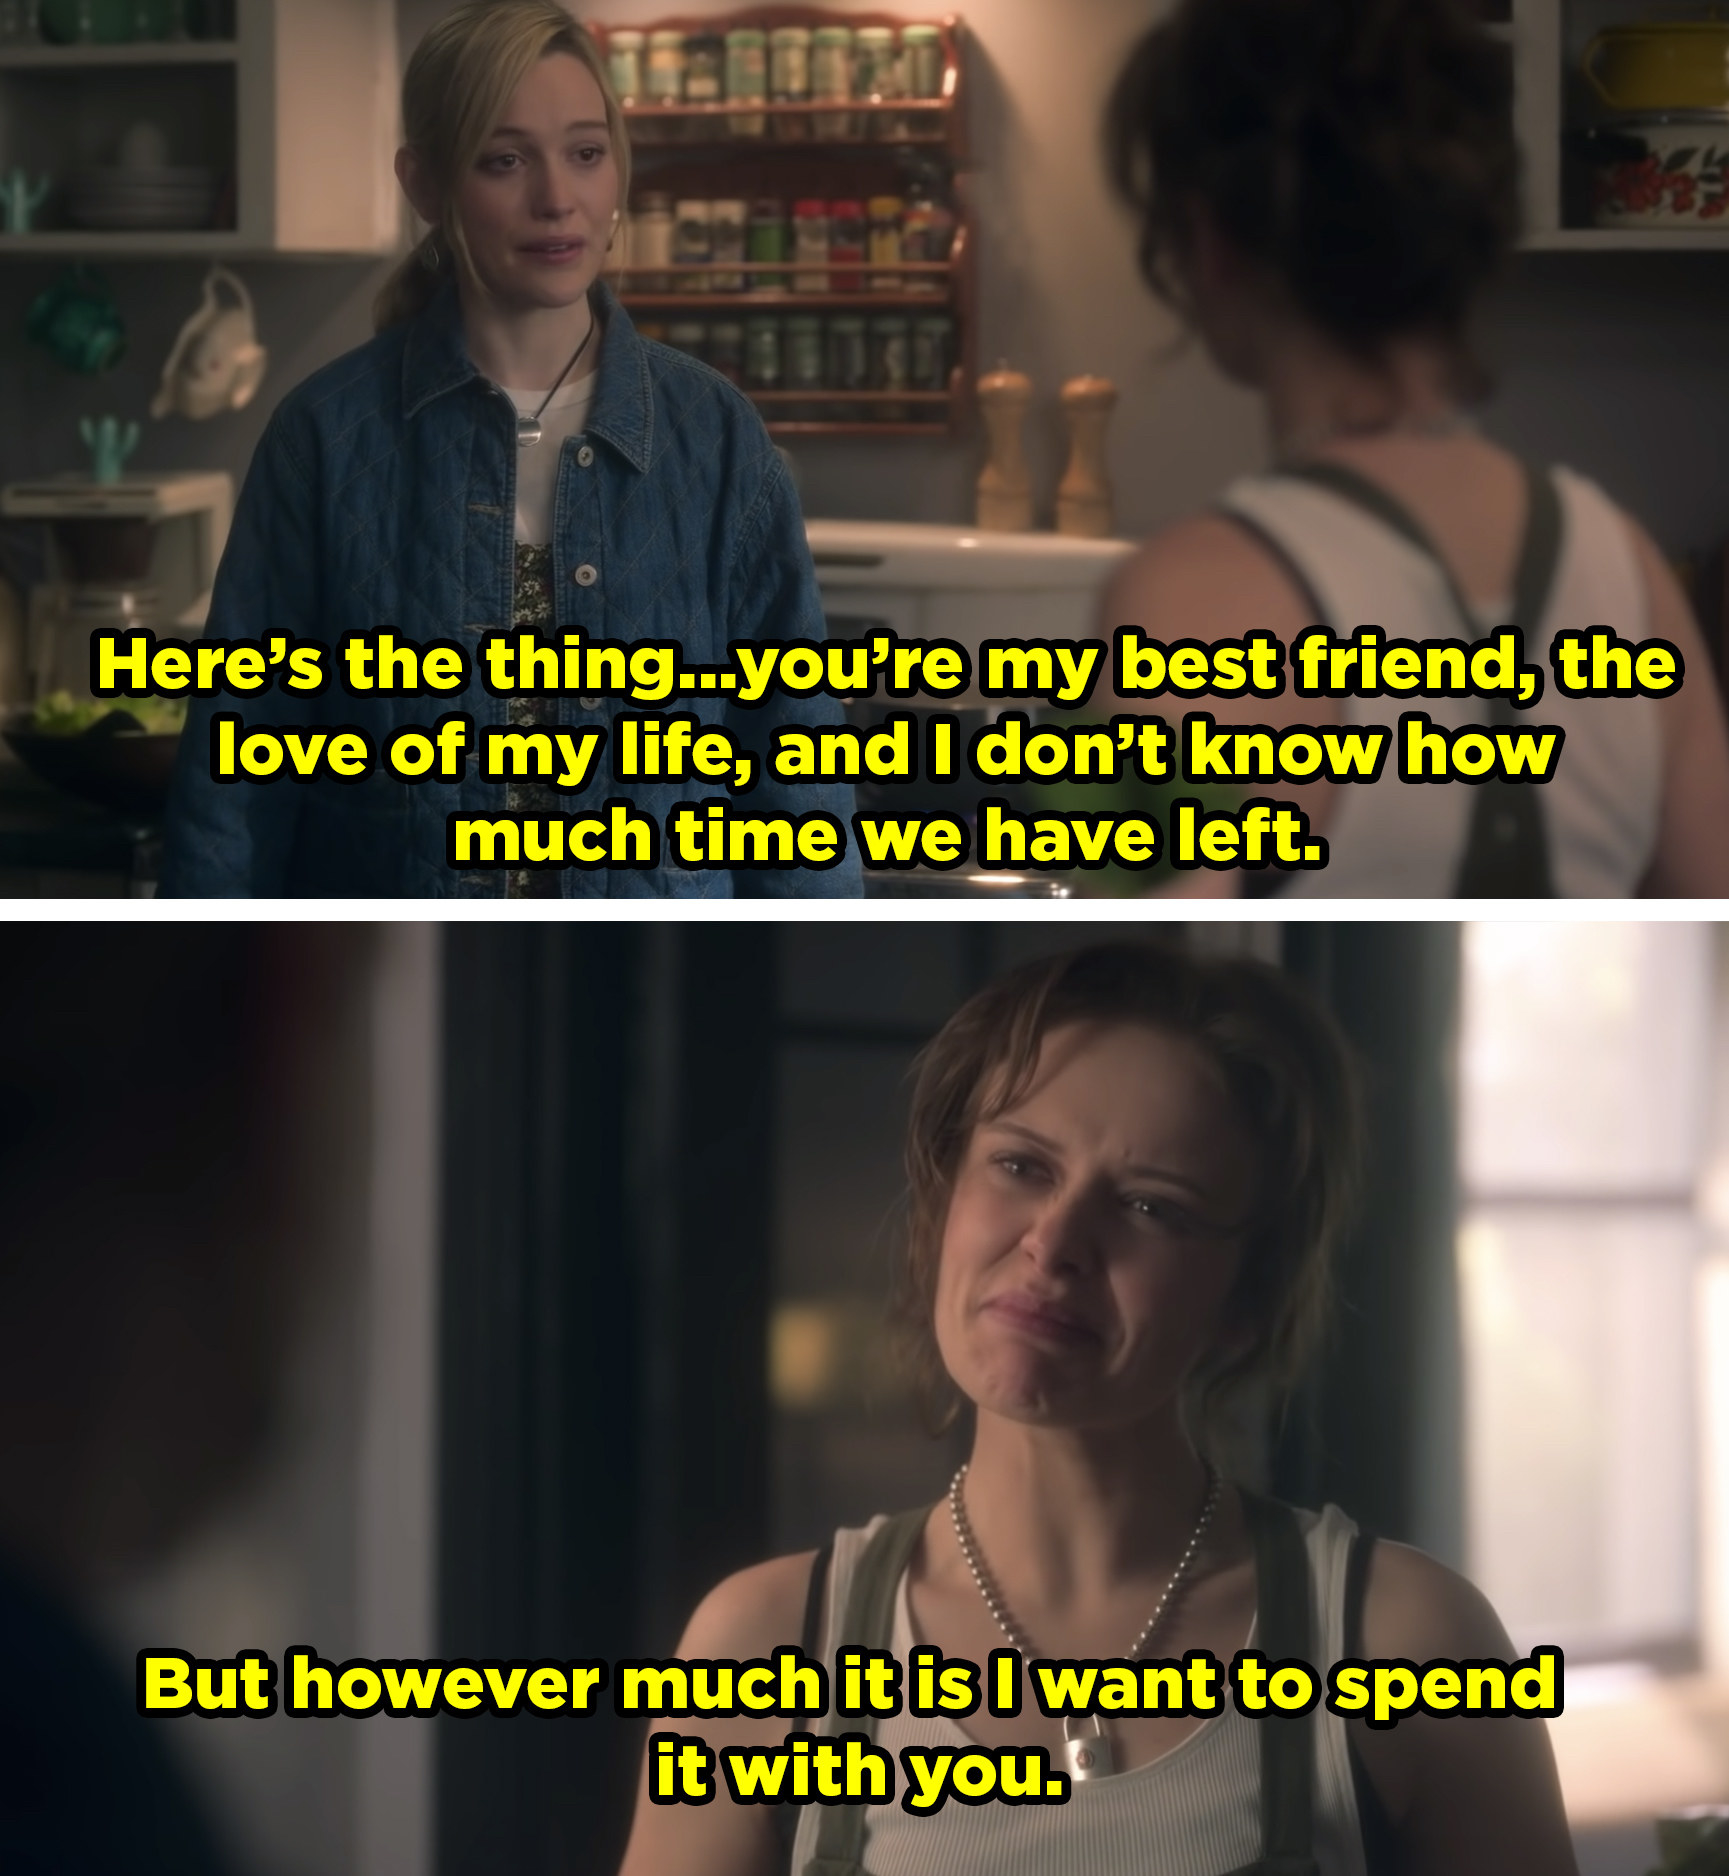 Dani tells Jamie she wants to spend the rest of her life with her.